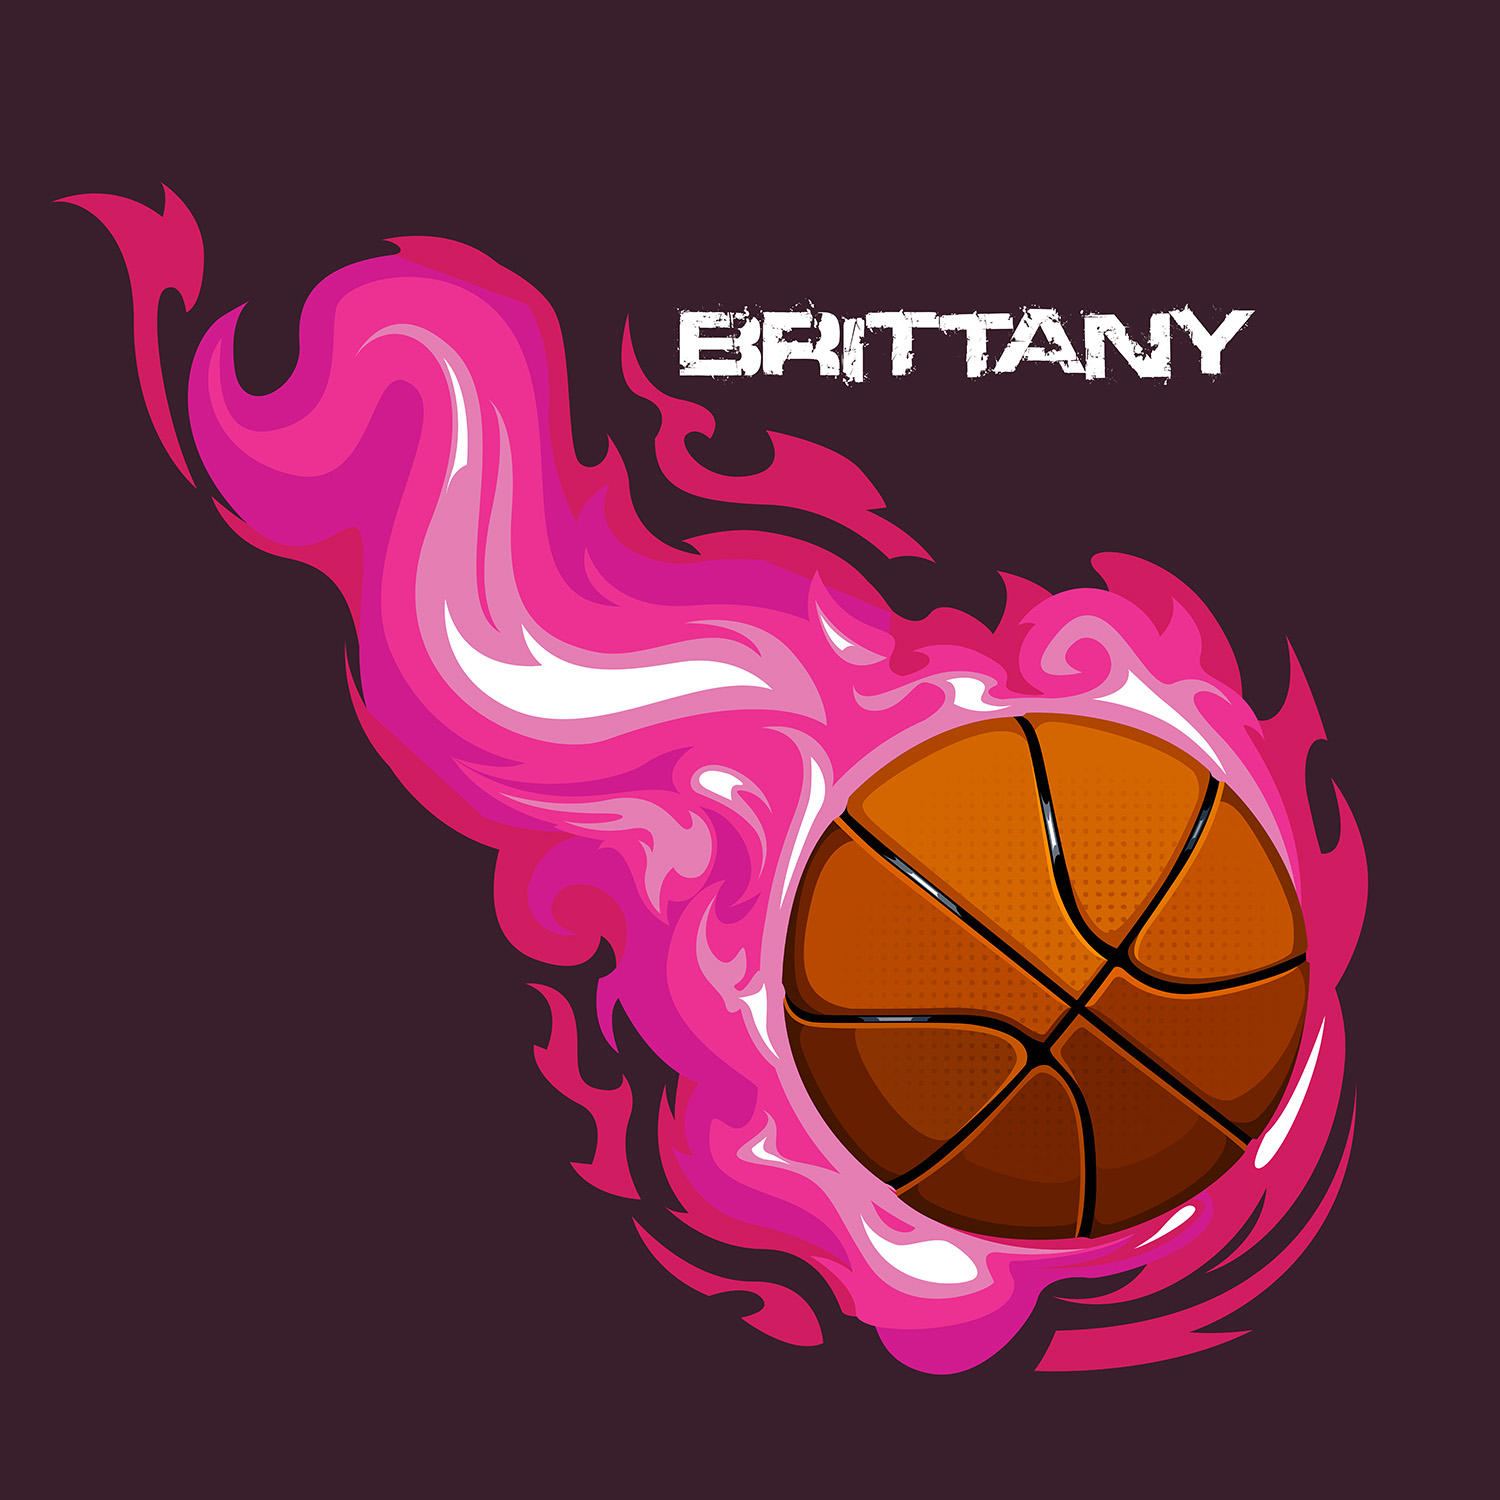 Girls Basketball Themed Bedding Set with Pink Flames and